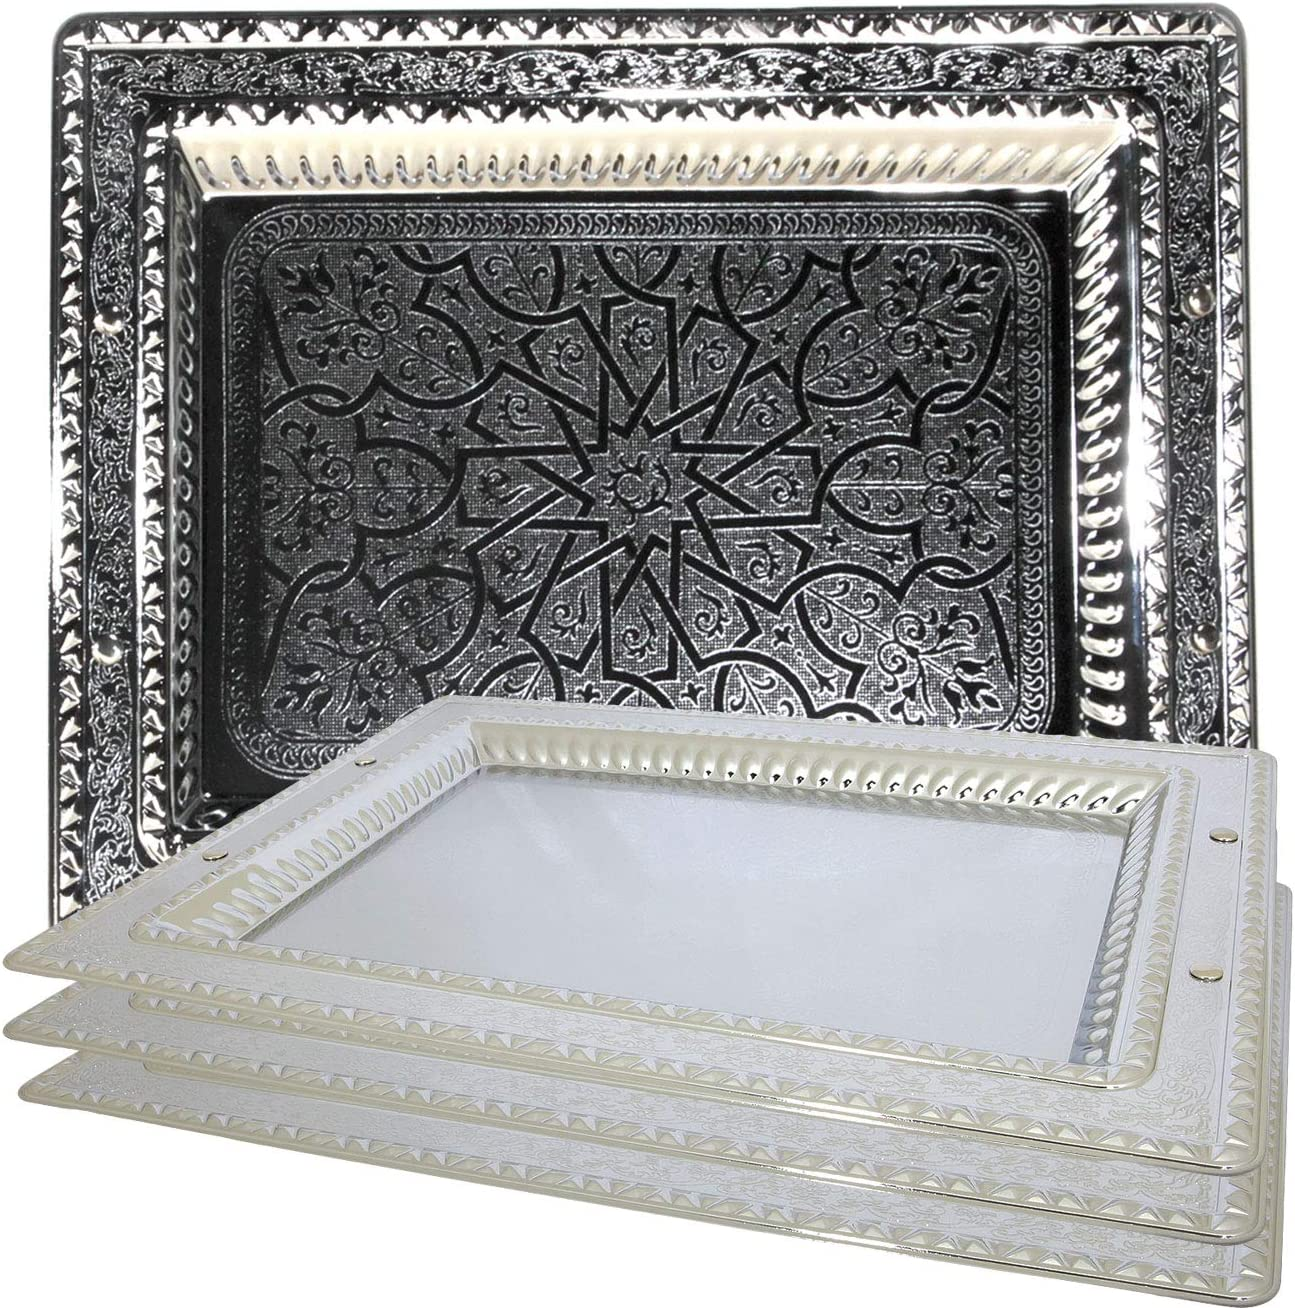 Maro Megastore (Pack of 4) 14.2-Inch x 10.6-Inch Rectangular Chrome Serving Tray Floral Engraved Decorative Victoria Style Wedding Birthday Buffet Party Dessert Food Wine Plate #2770 S TS-017